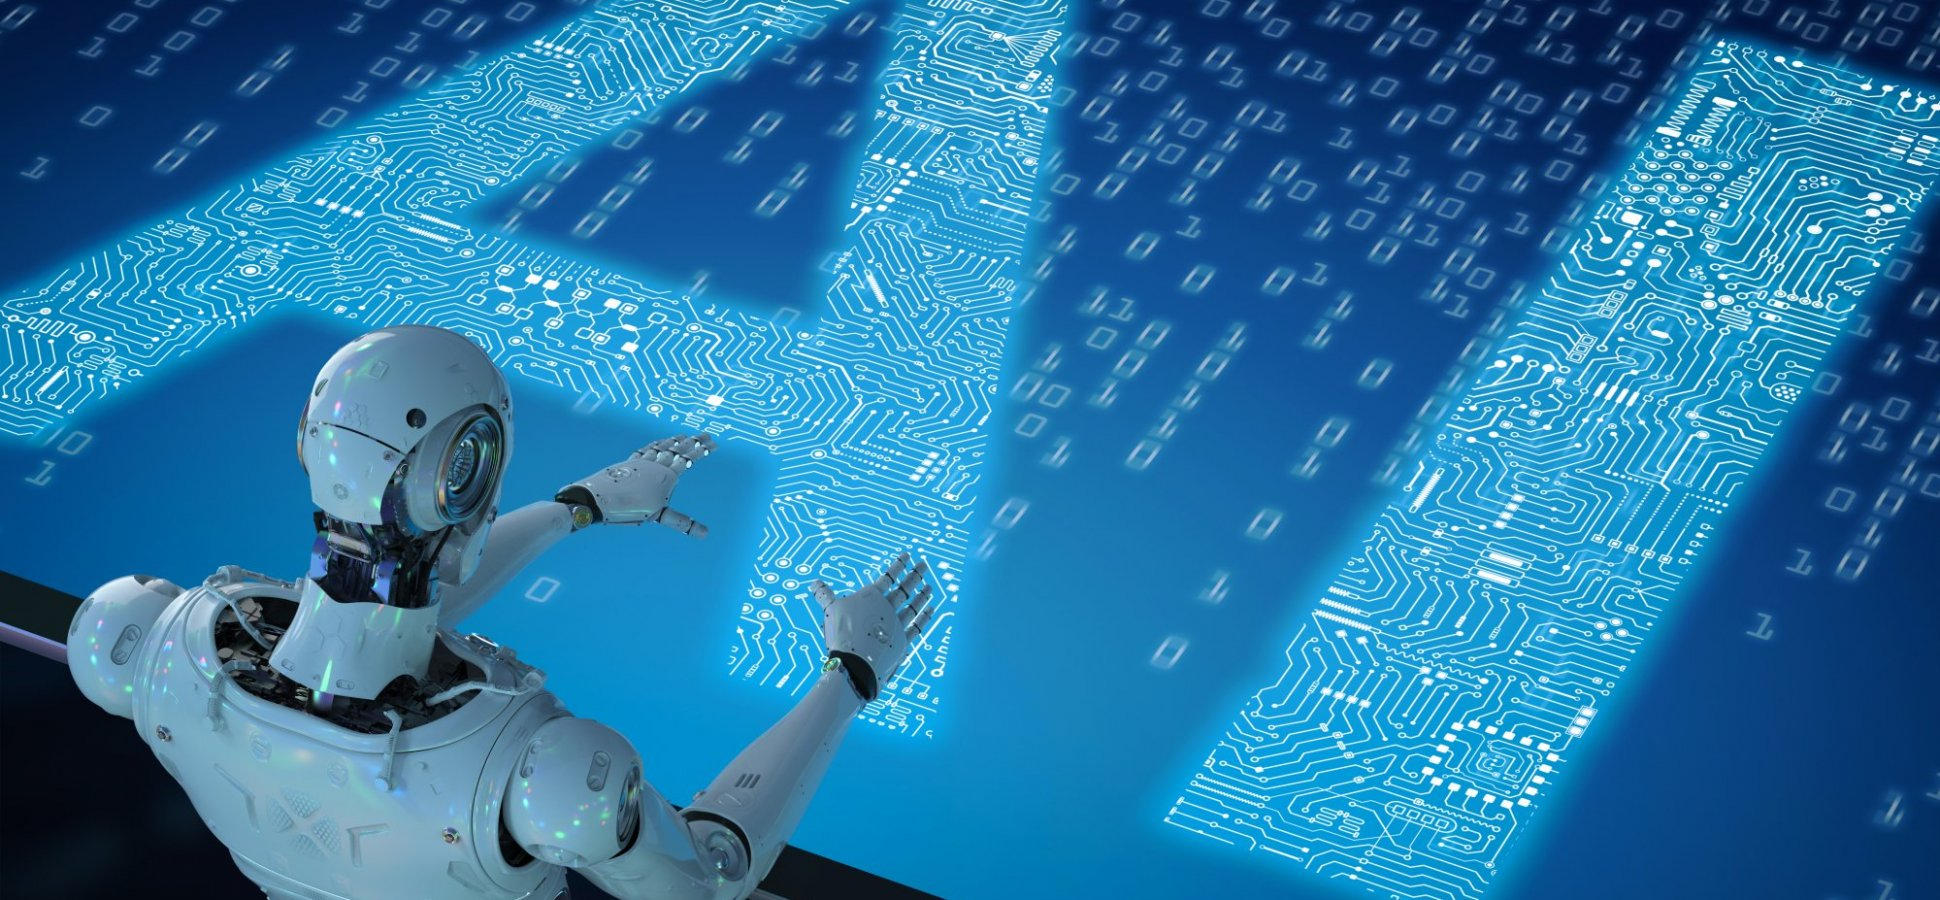 Companies Use Artificial Intelligence to Help with Hiring. Korean Consultants Teach You How to Beat It